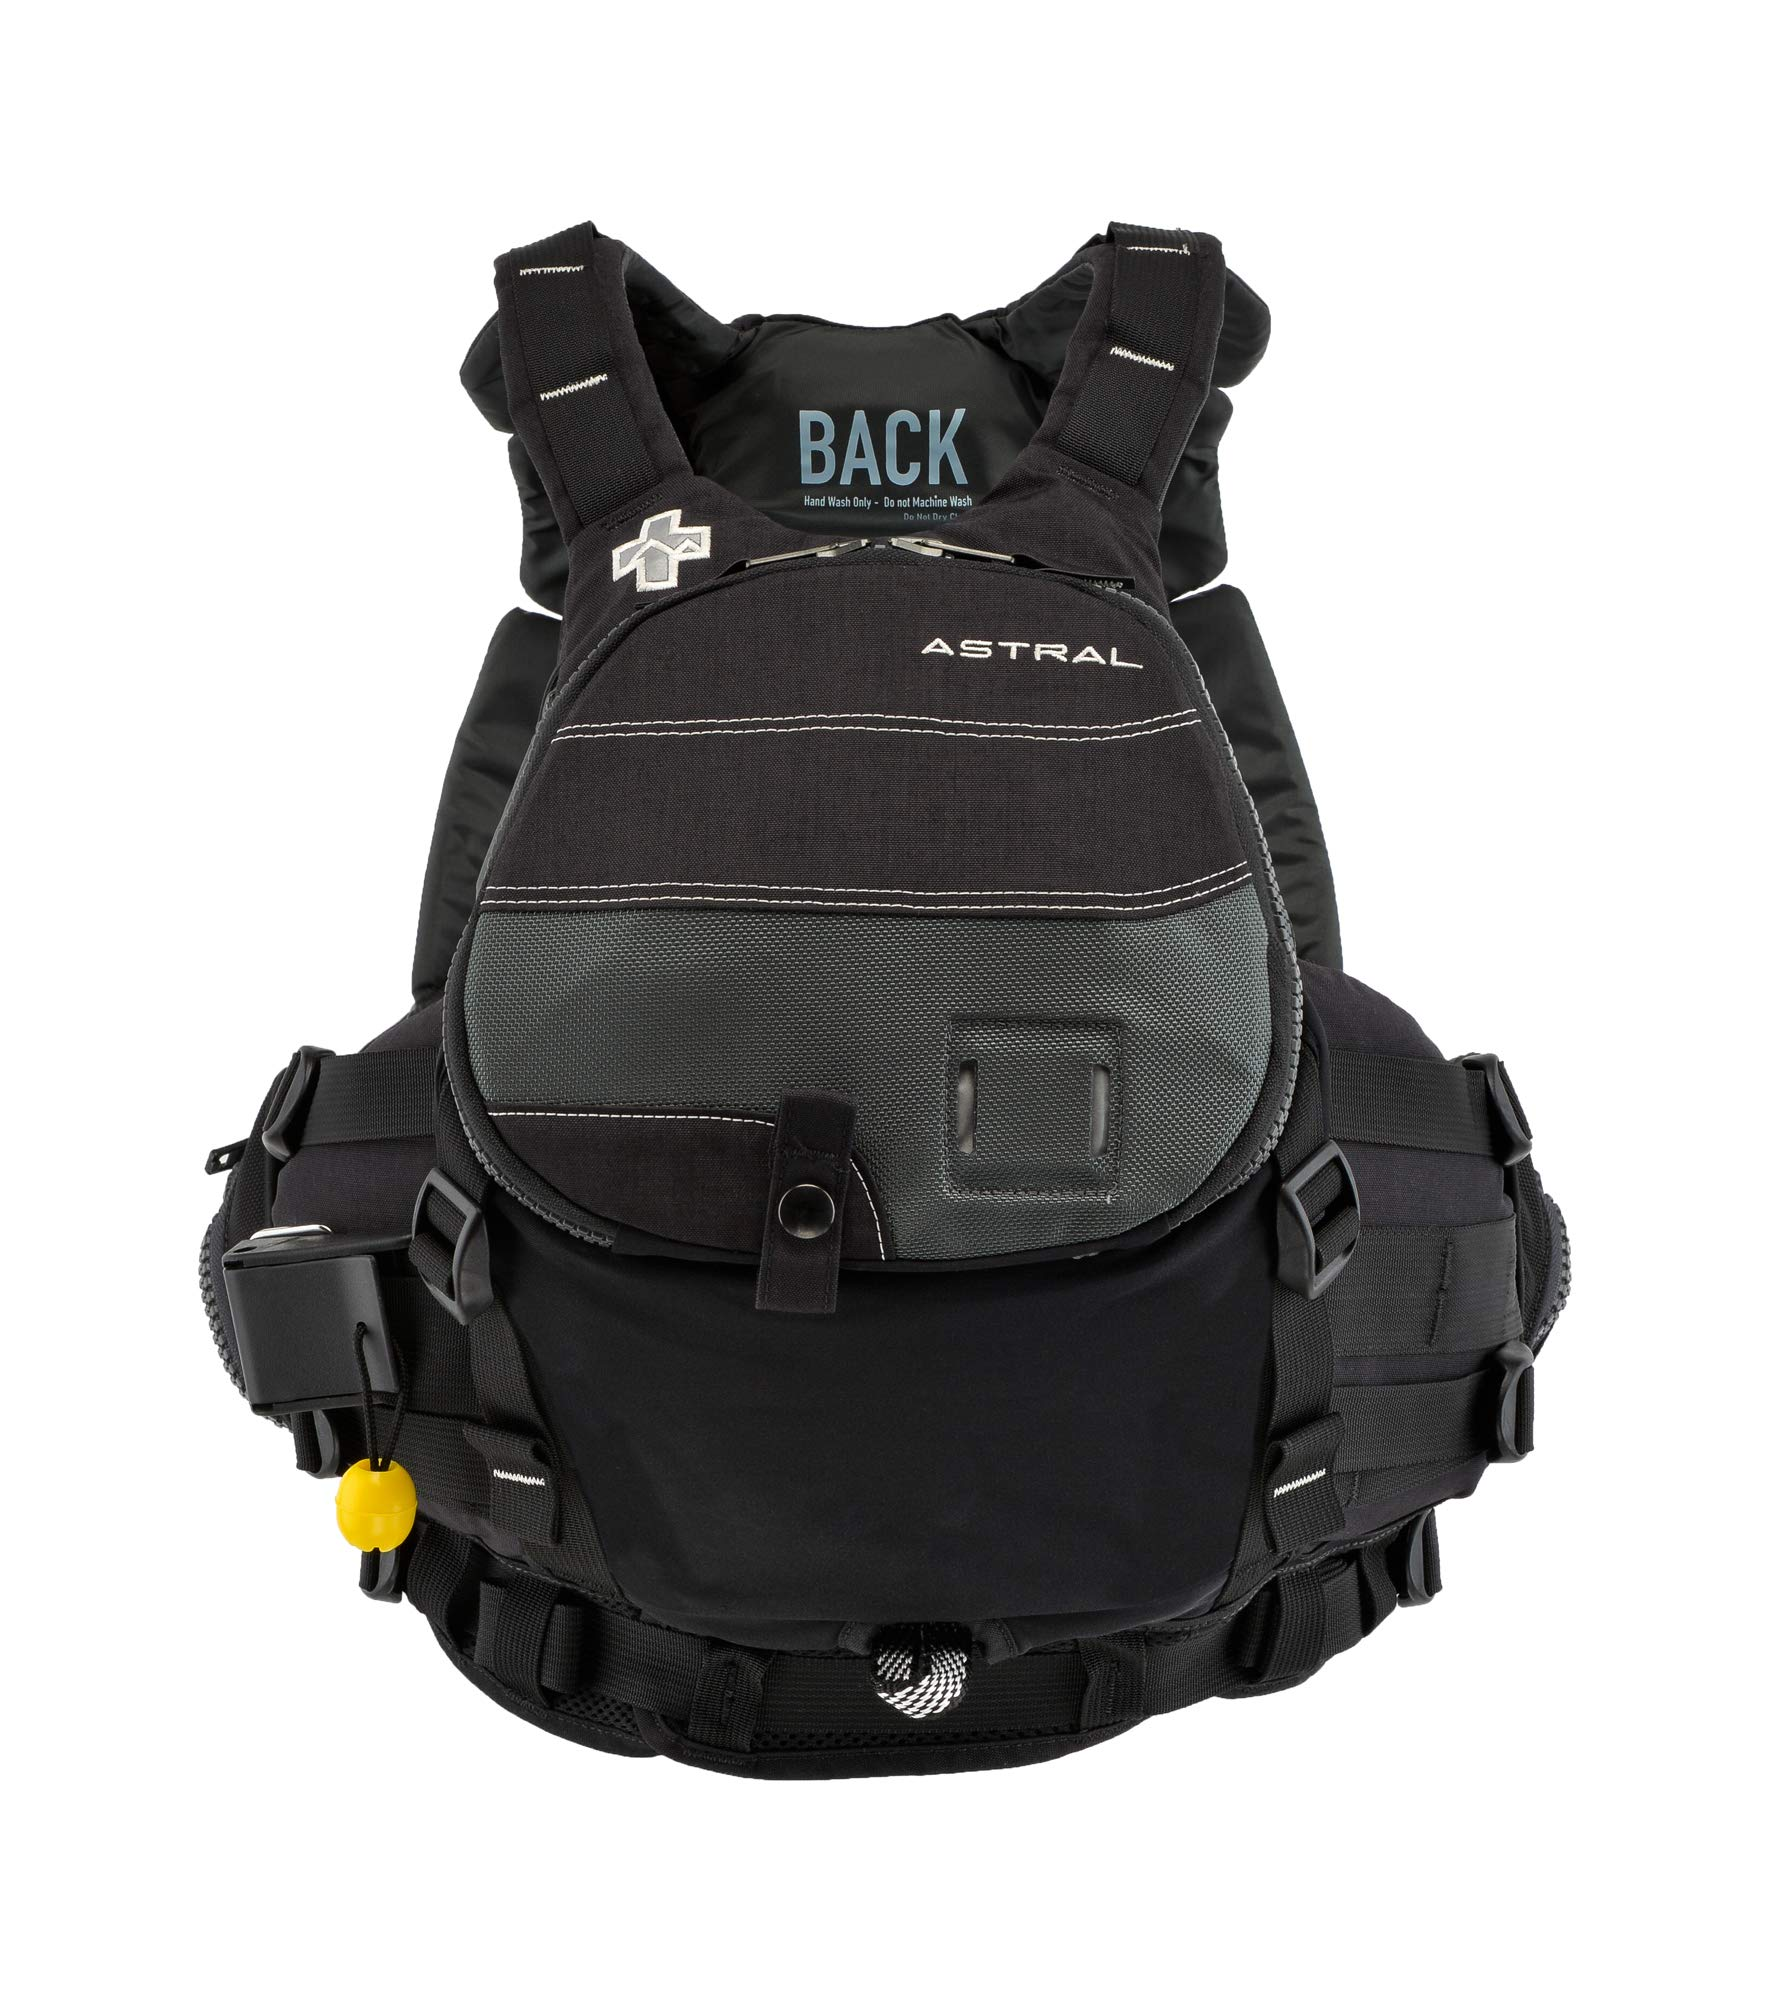 Astral GreenJacket Life Jacket PFD for Whitewater Rescue, Sea, and Stand Up Paddle Boarding, Slate Black, Small/Medium